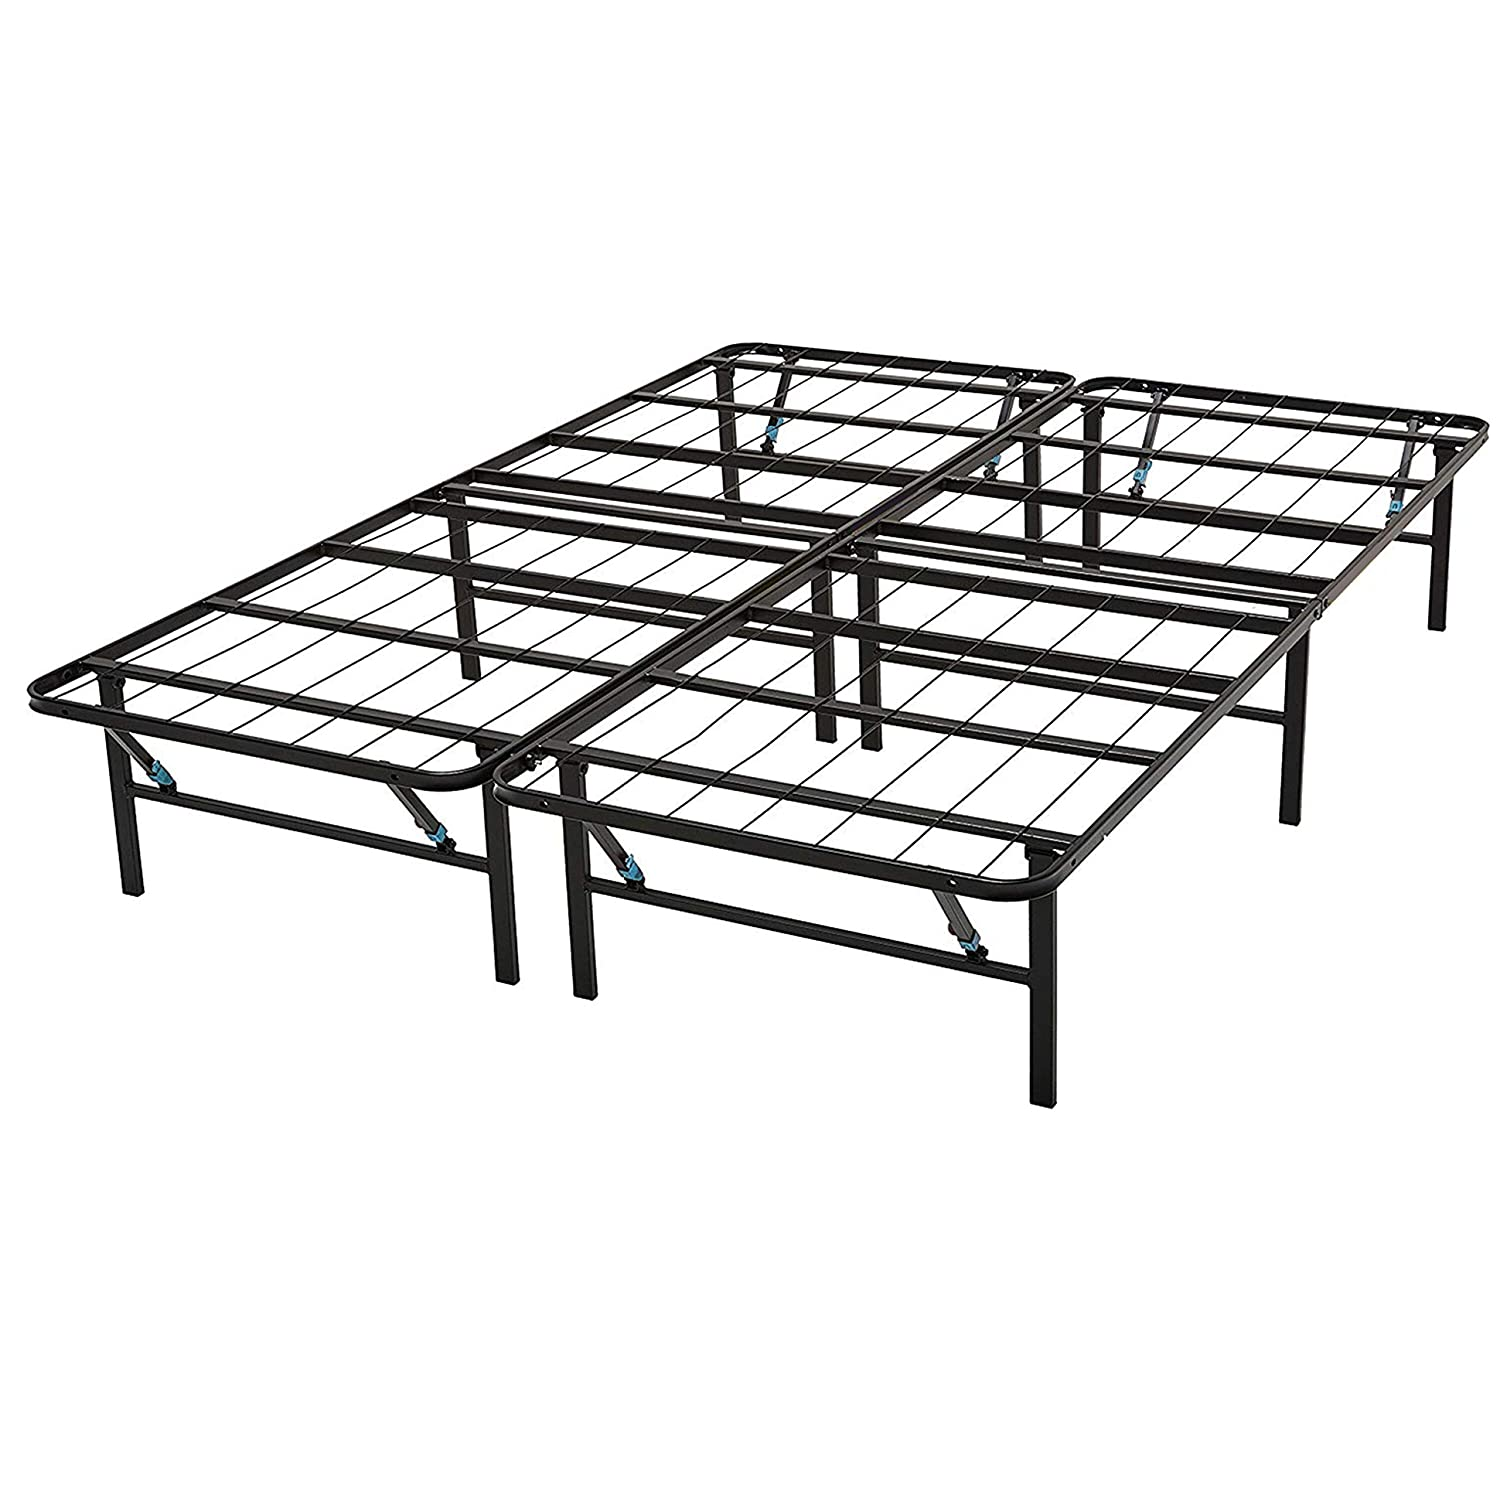 Omne Sleep 14-Inch Maximum Storage Mattress Foundation Up to 2000lb Capacity Bed Frame 5 Second Tool-Free Assembly Noise Free Platform Bed Base Box Spring Replacement Queen